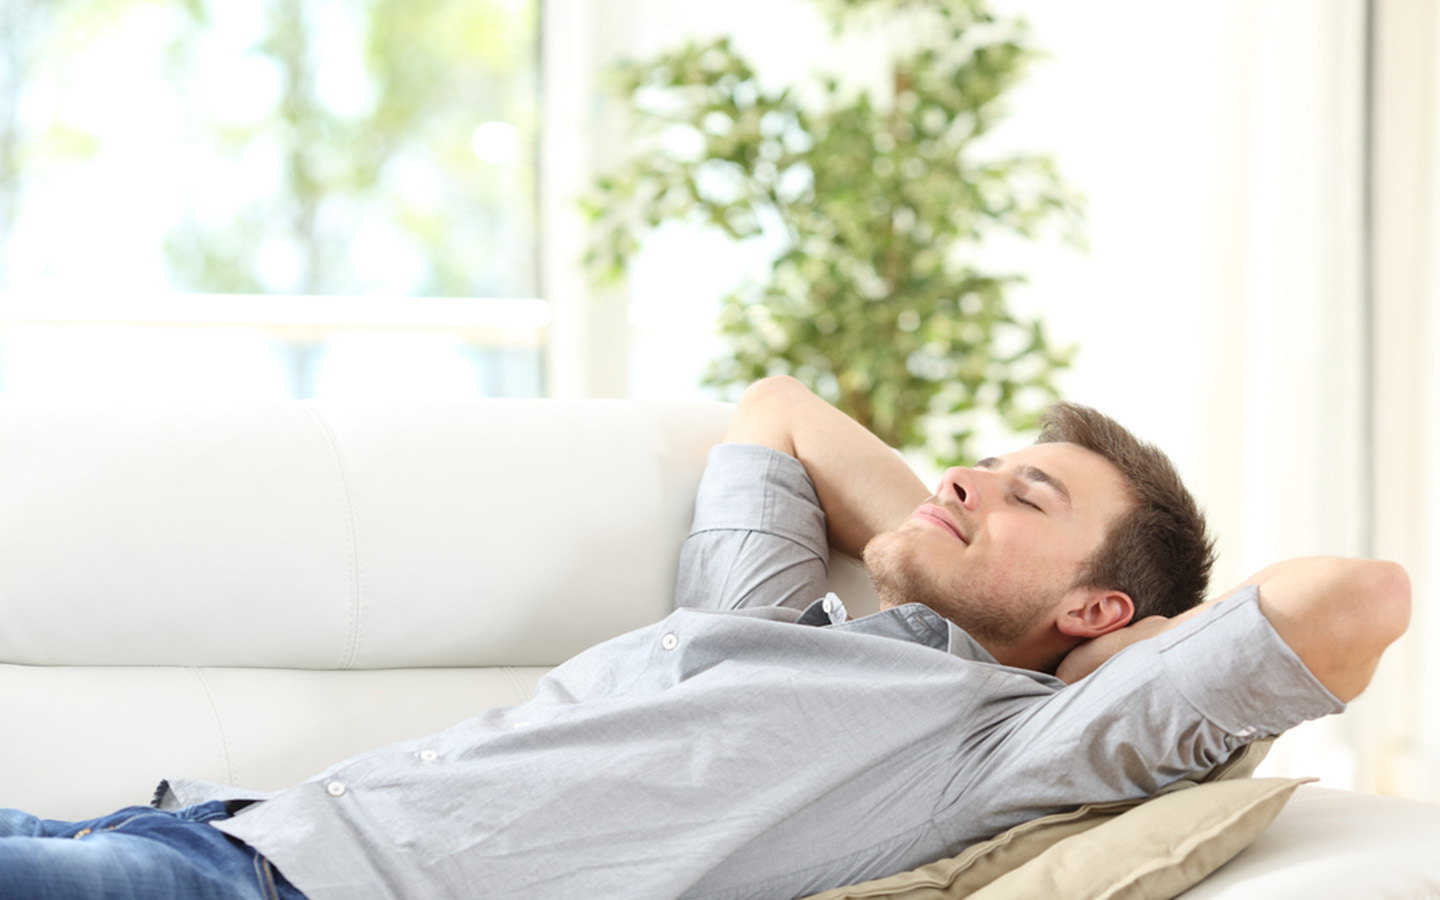 A man lying on a couch